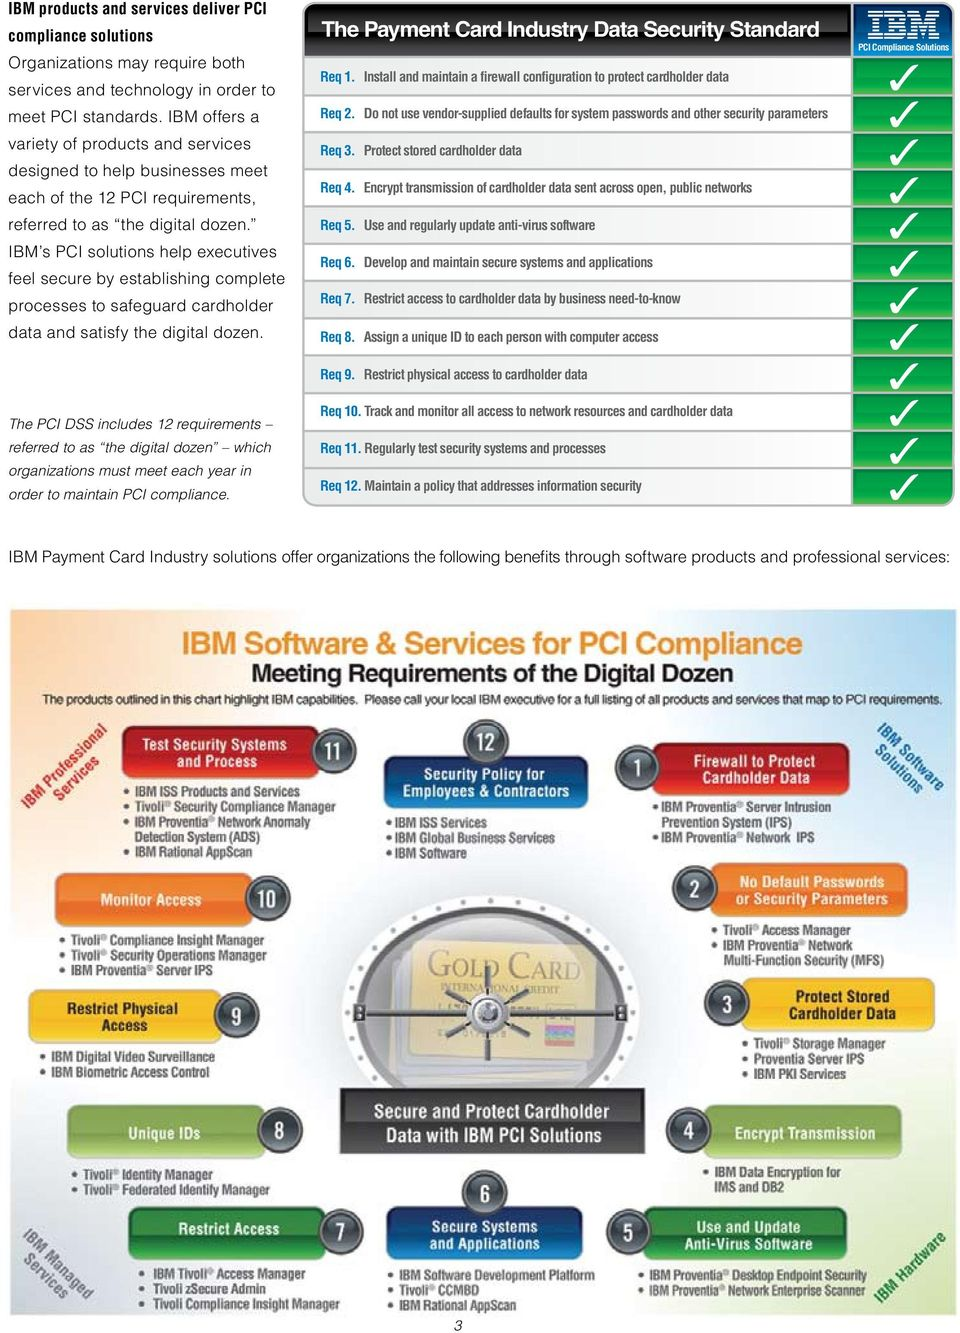 IBM s PCI solutions help executives feel secure by establishing complete processes to safeguard cardholder data and satisfy the digital dozen.